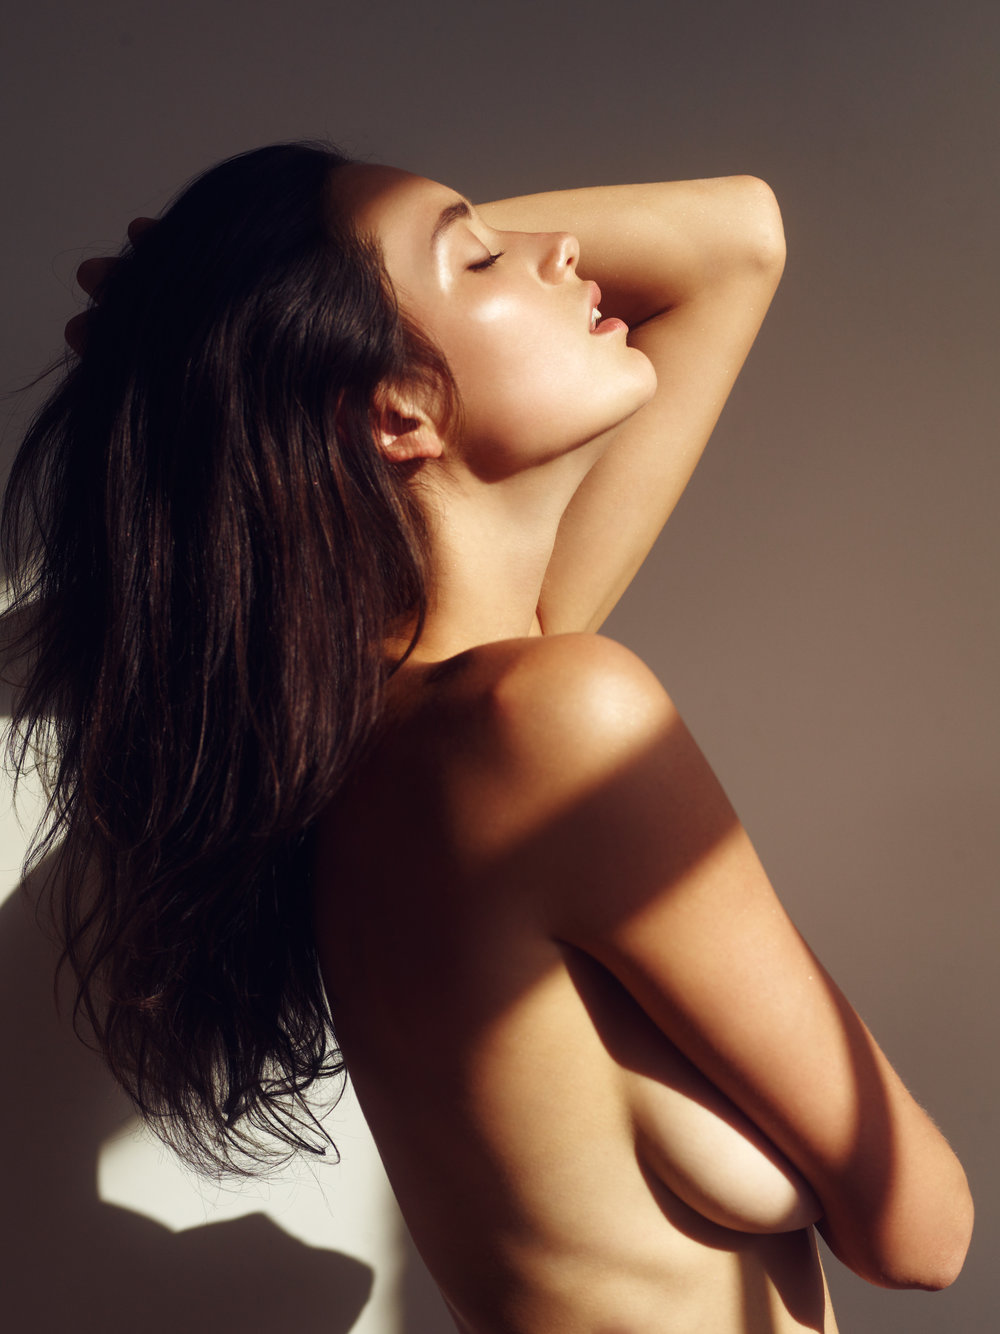 audrey-quock-nude-image